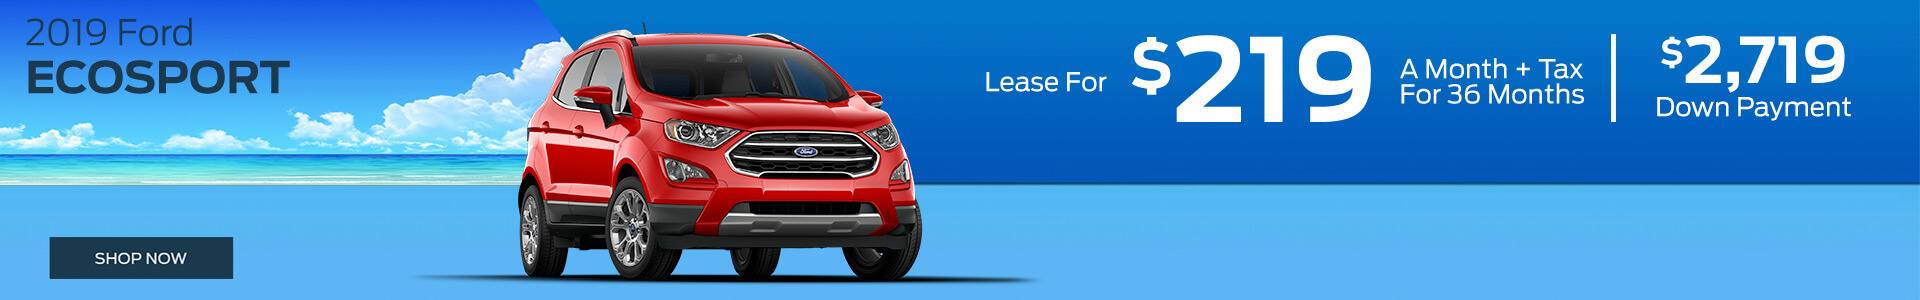 Eco Sport - Lease for $219